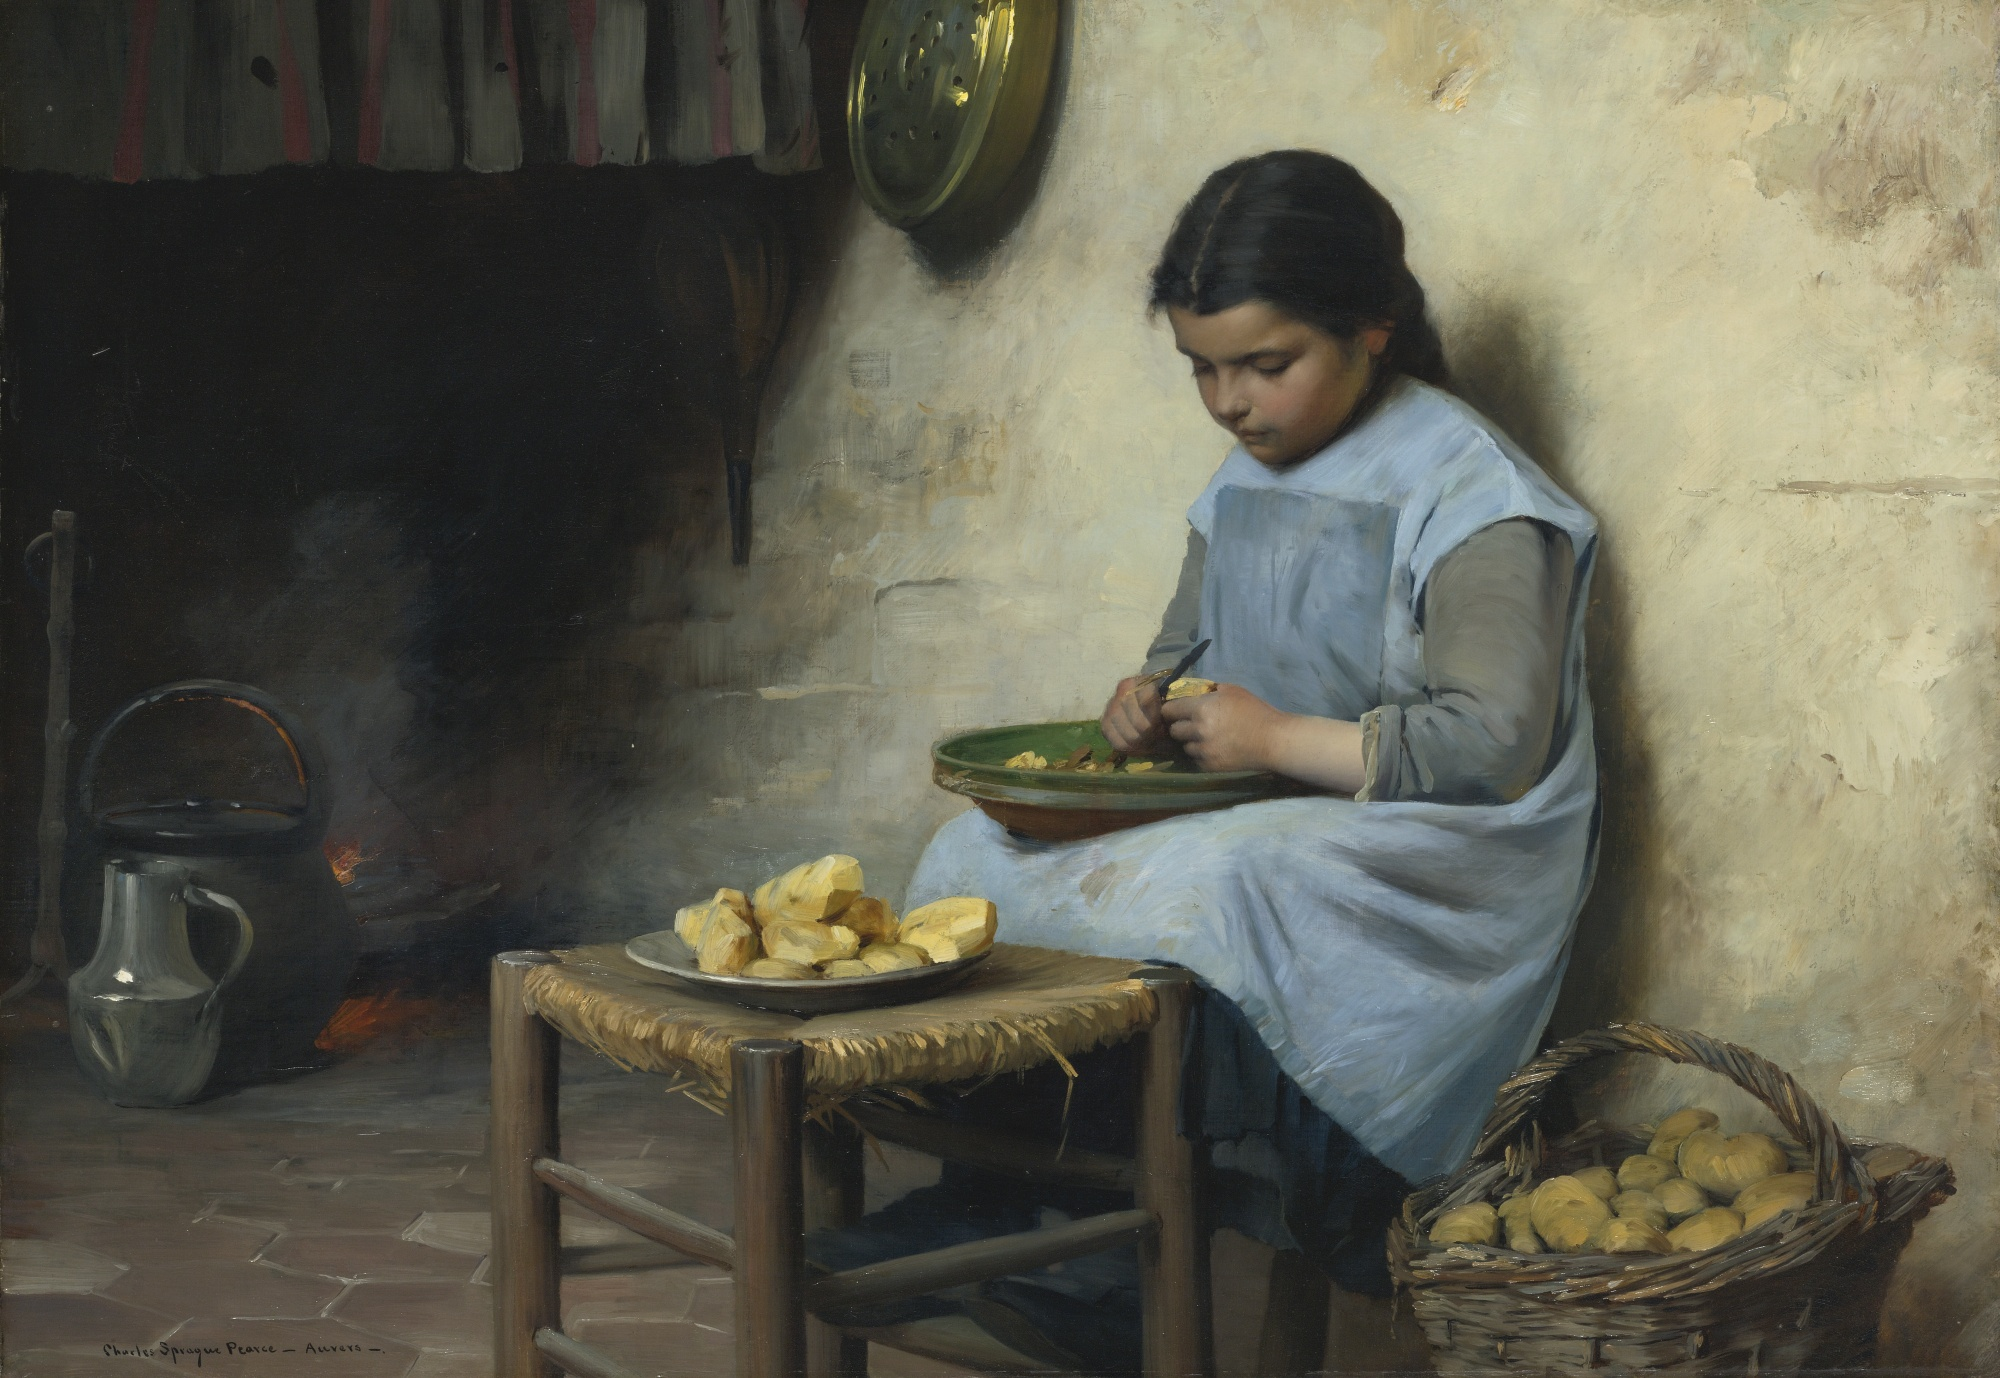 Peeling Potatoes, by Charles Sprague Pearce, circa 1885